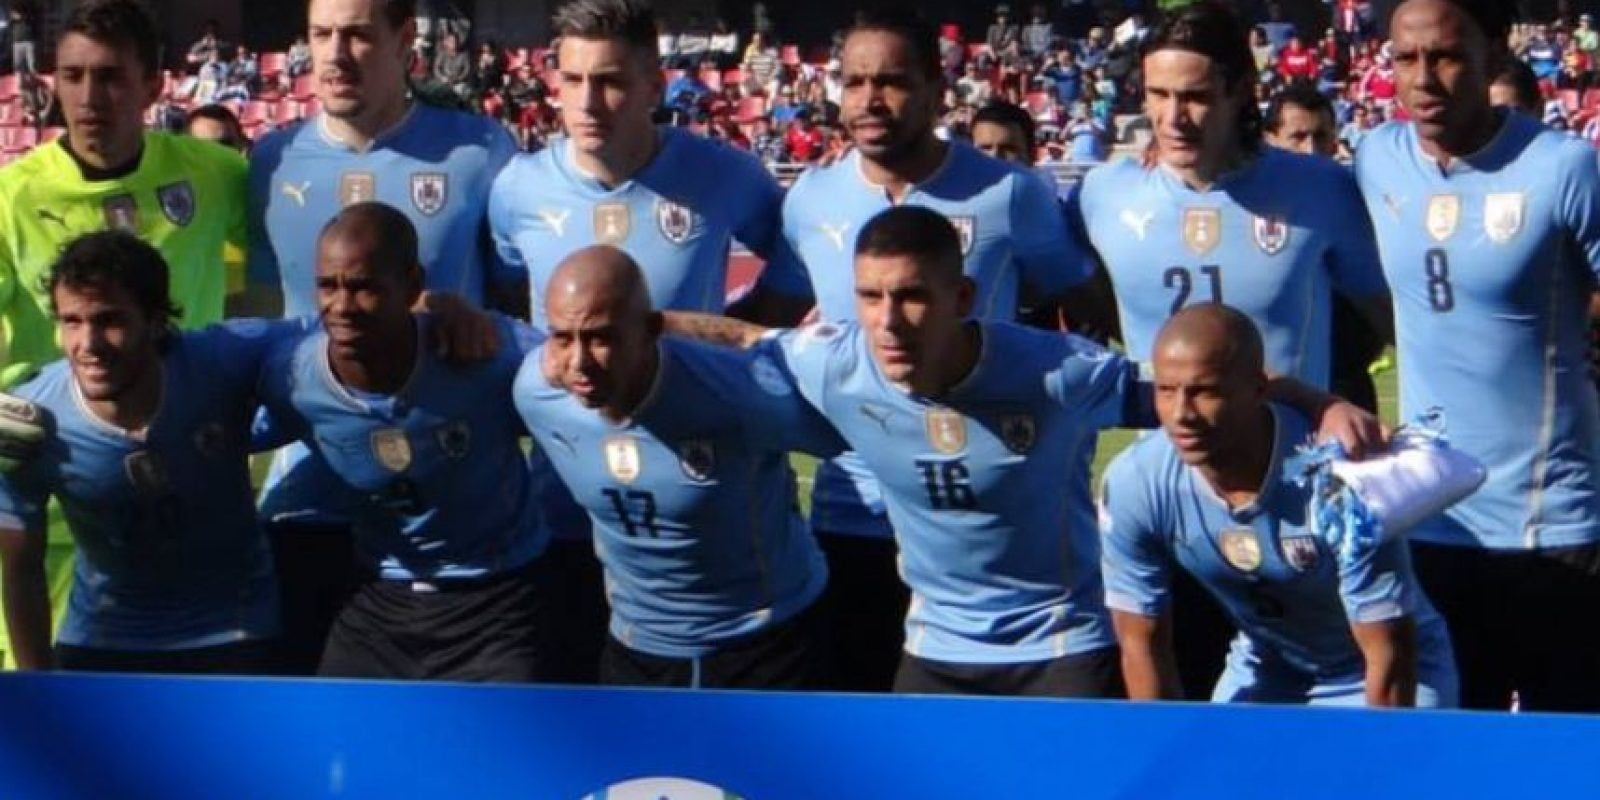 Chile vs. Uruguay / 24 de junio Foto: Vía facebook.com/aufoficial